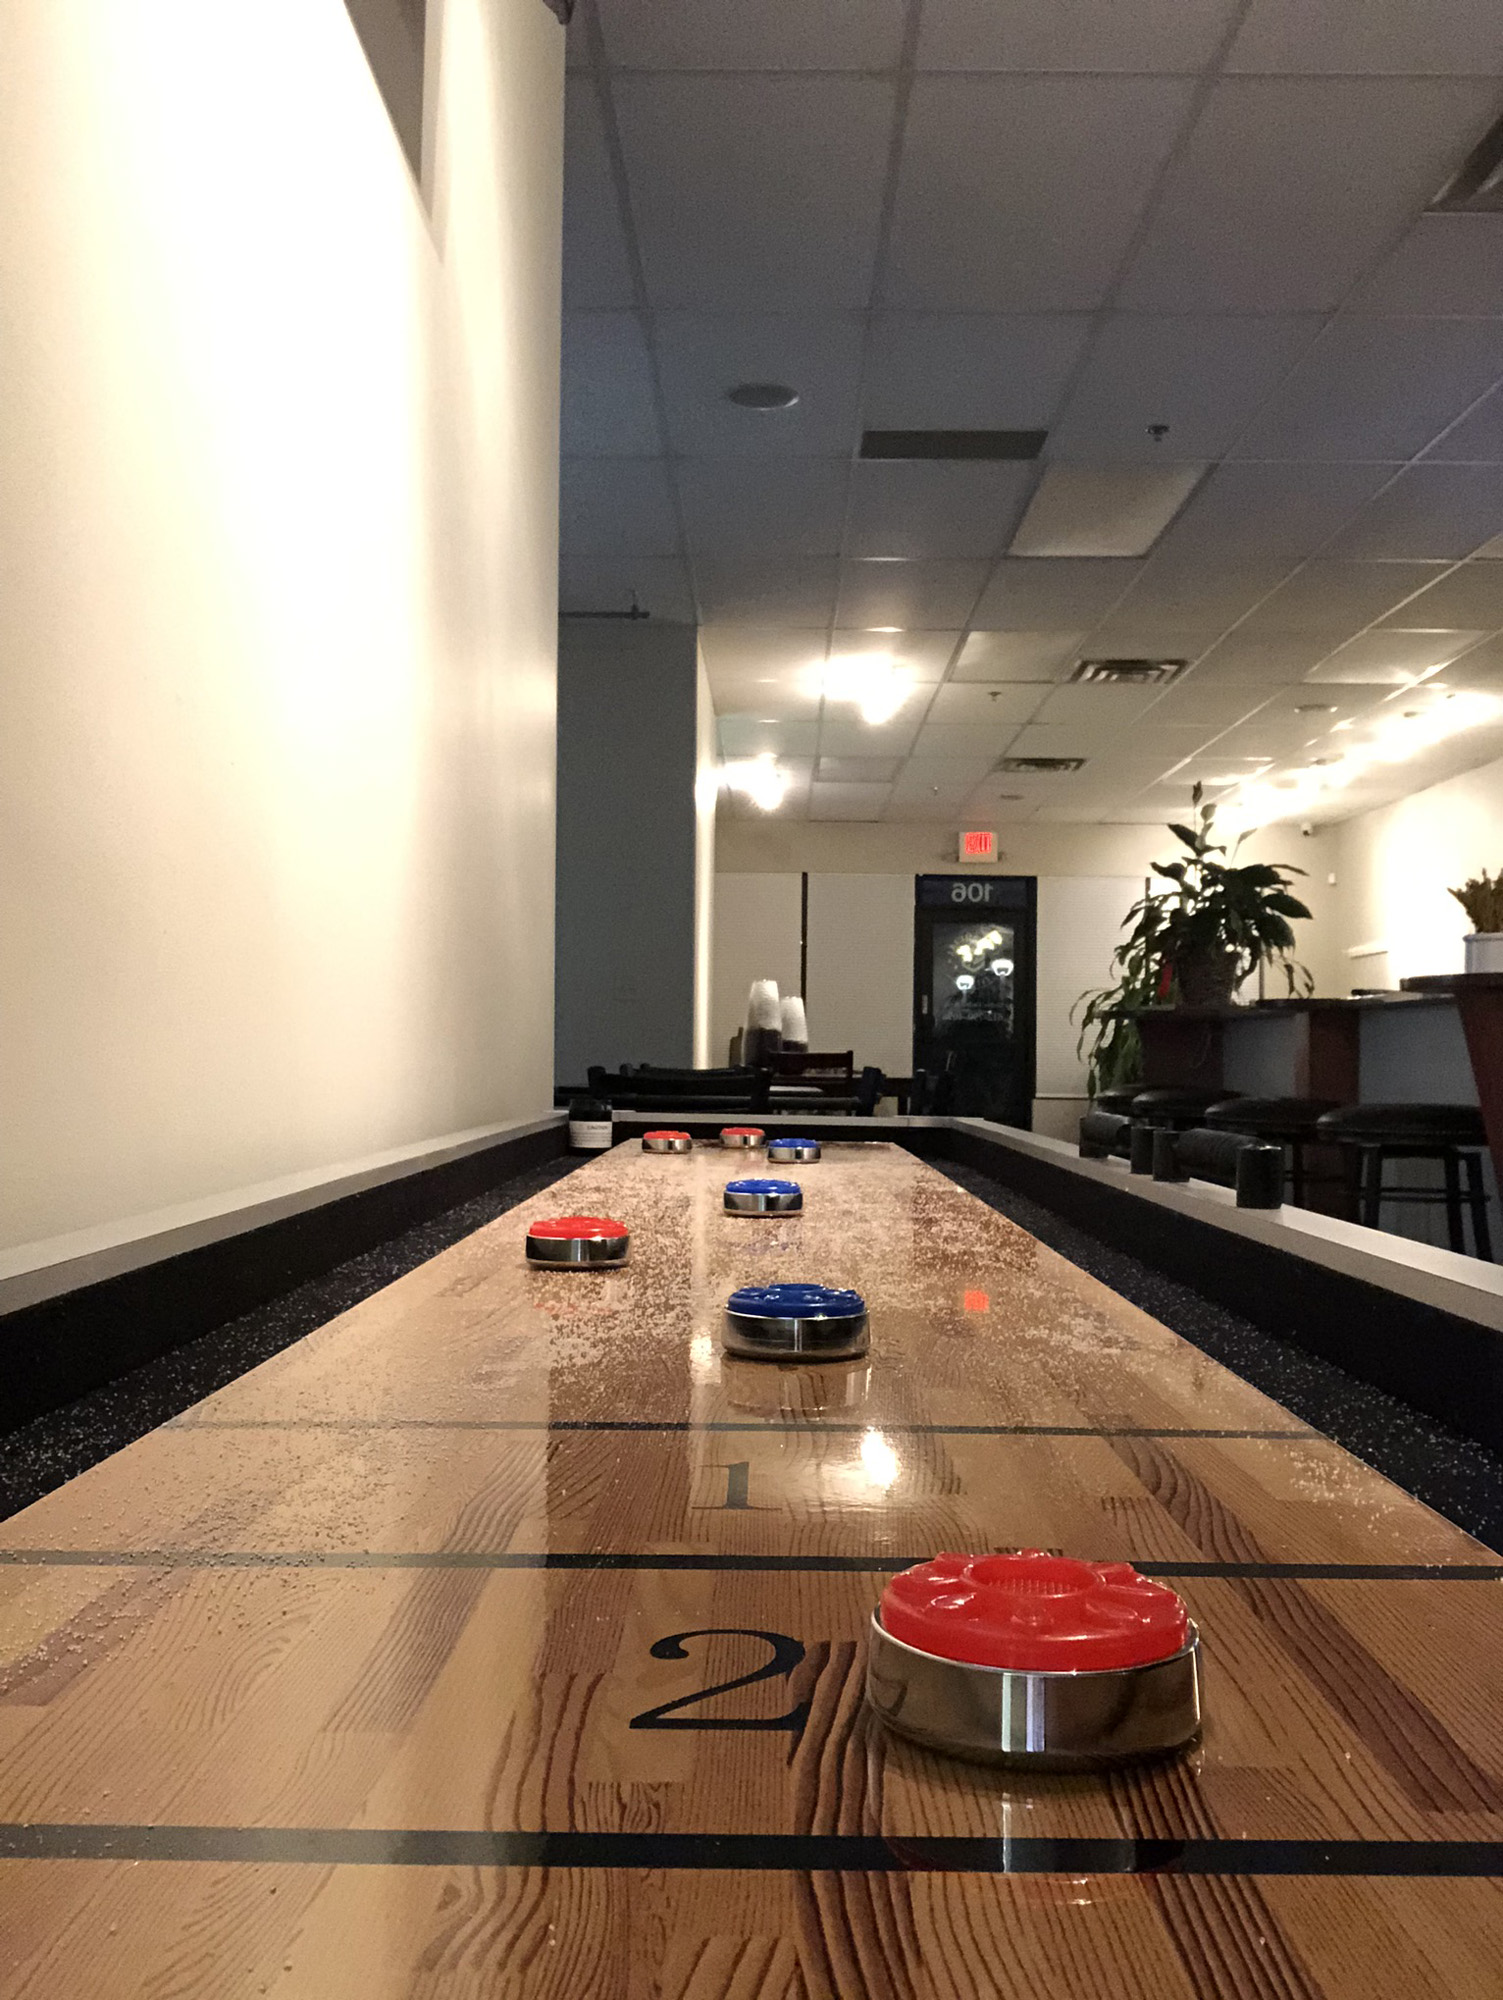 Shuffleboard_Cowrking_Space_The_Social_M